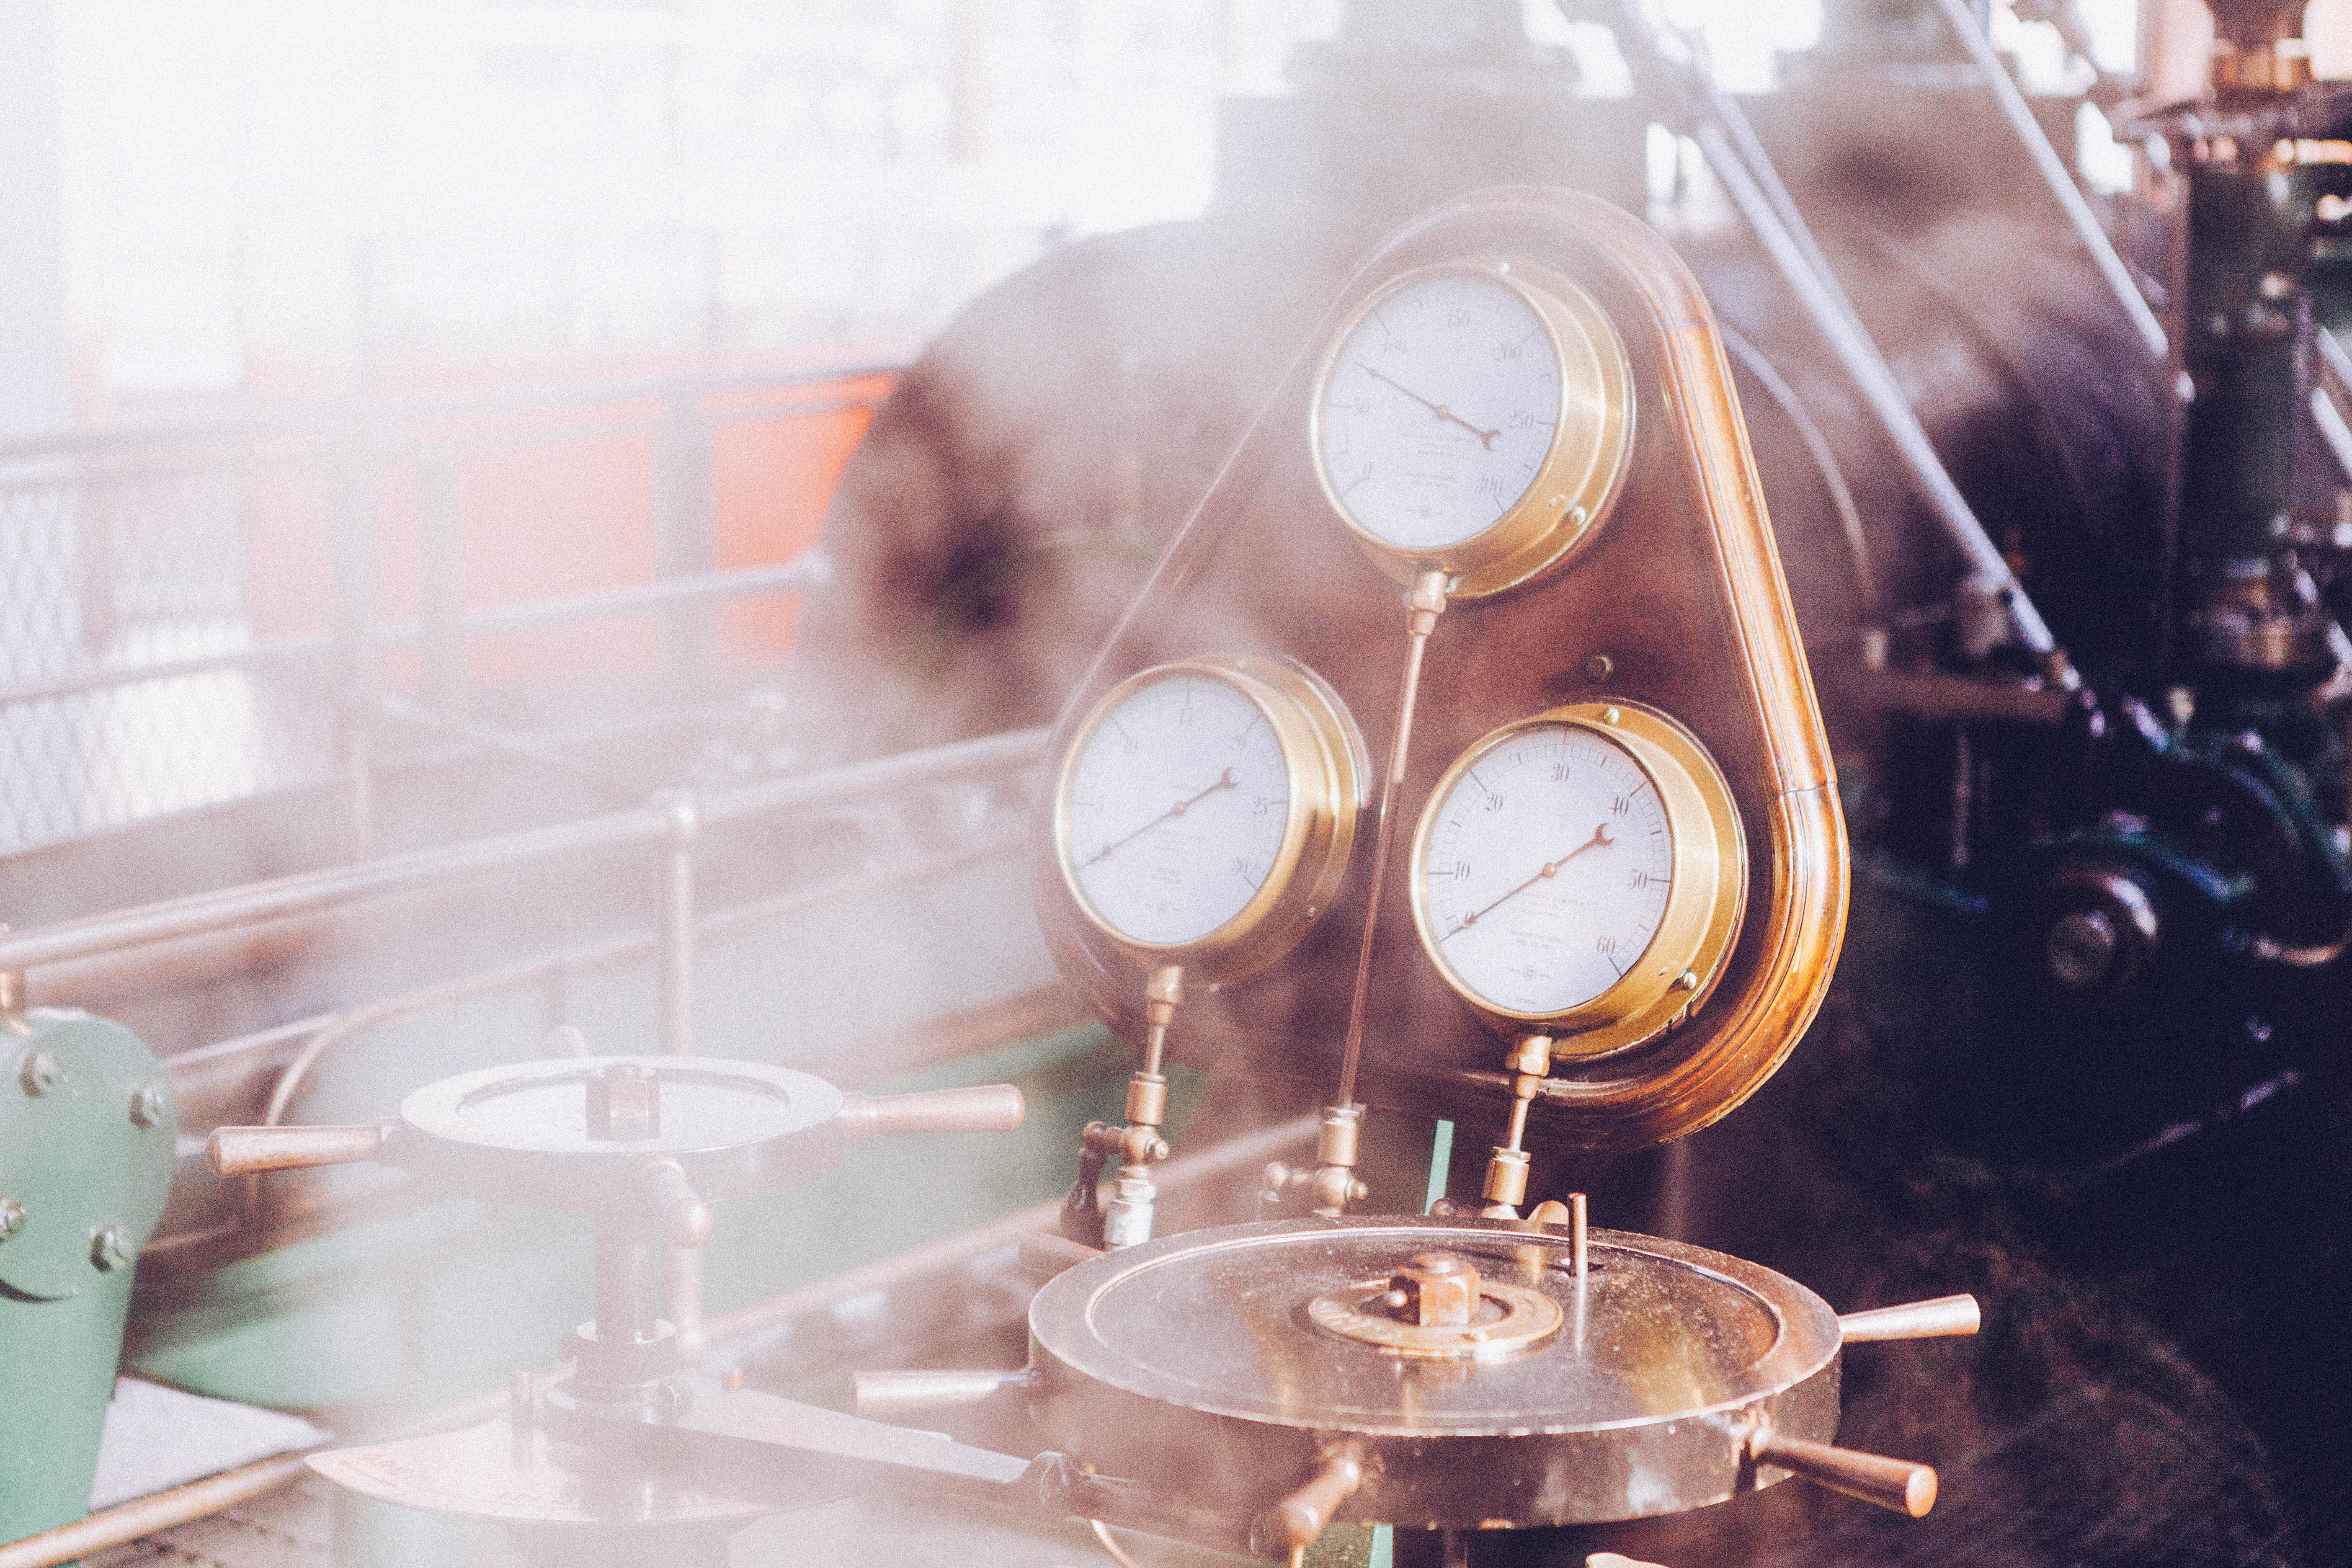 Industrial Automation & Process Control KPIs